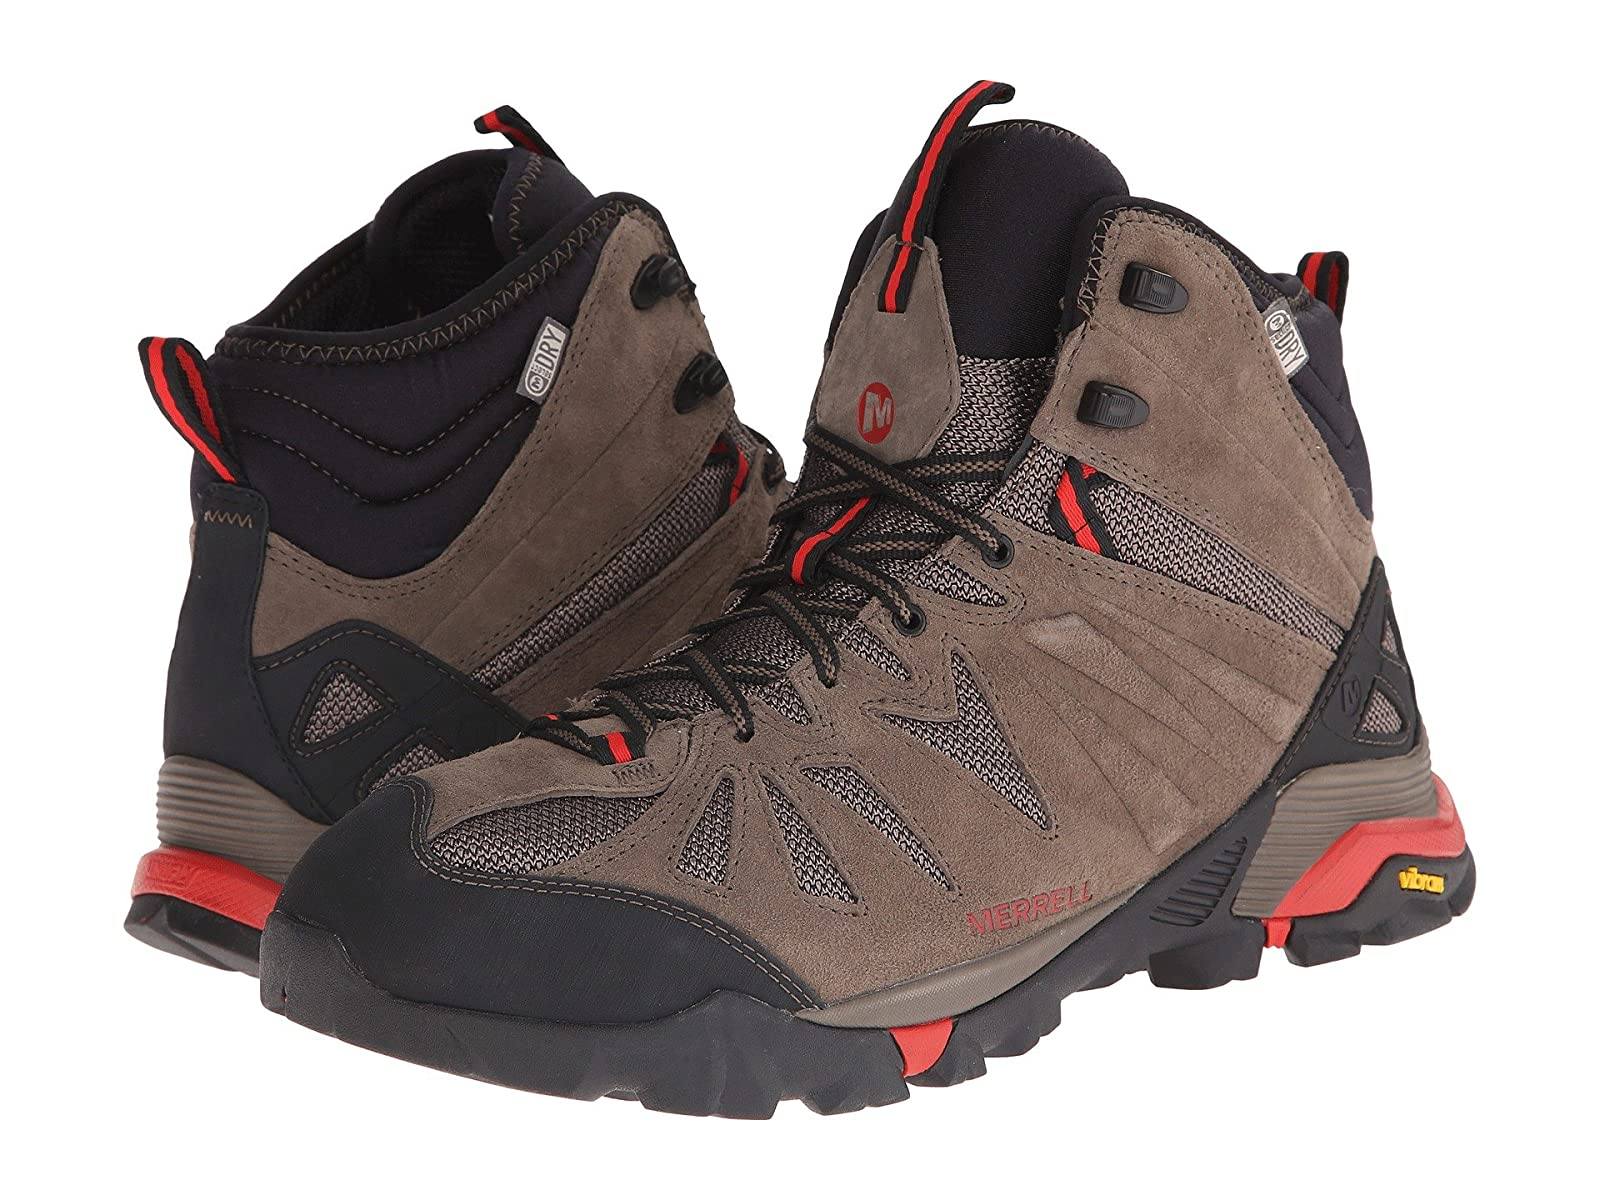 Merrell Capra Mid WaterproofCheap and distinctive eye-catching shoes